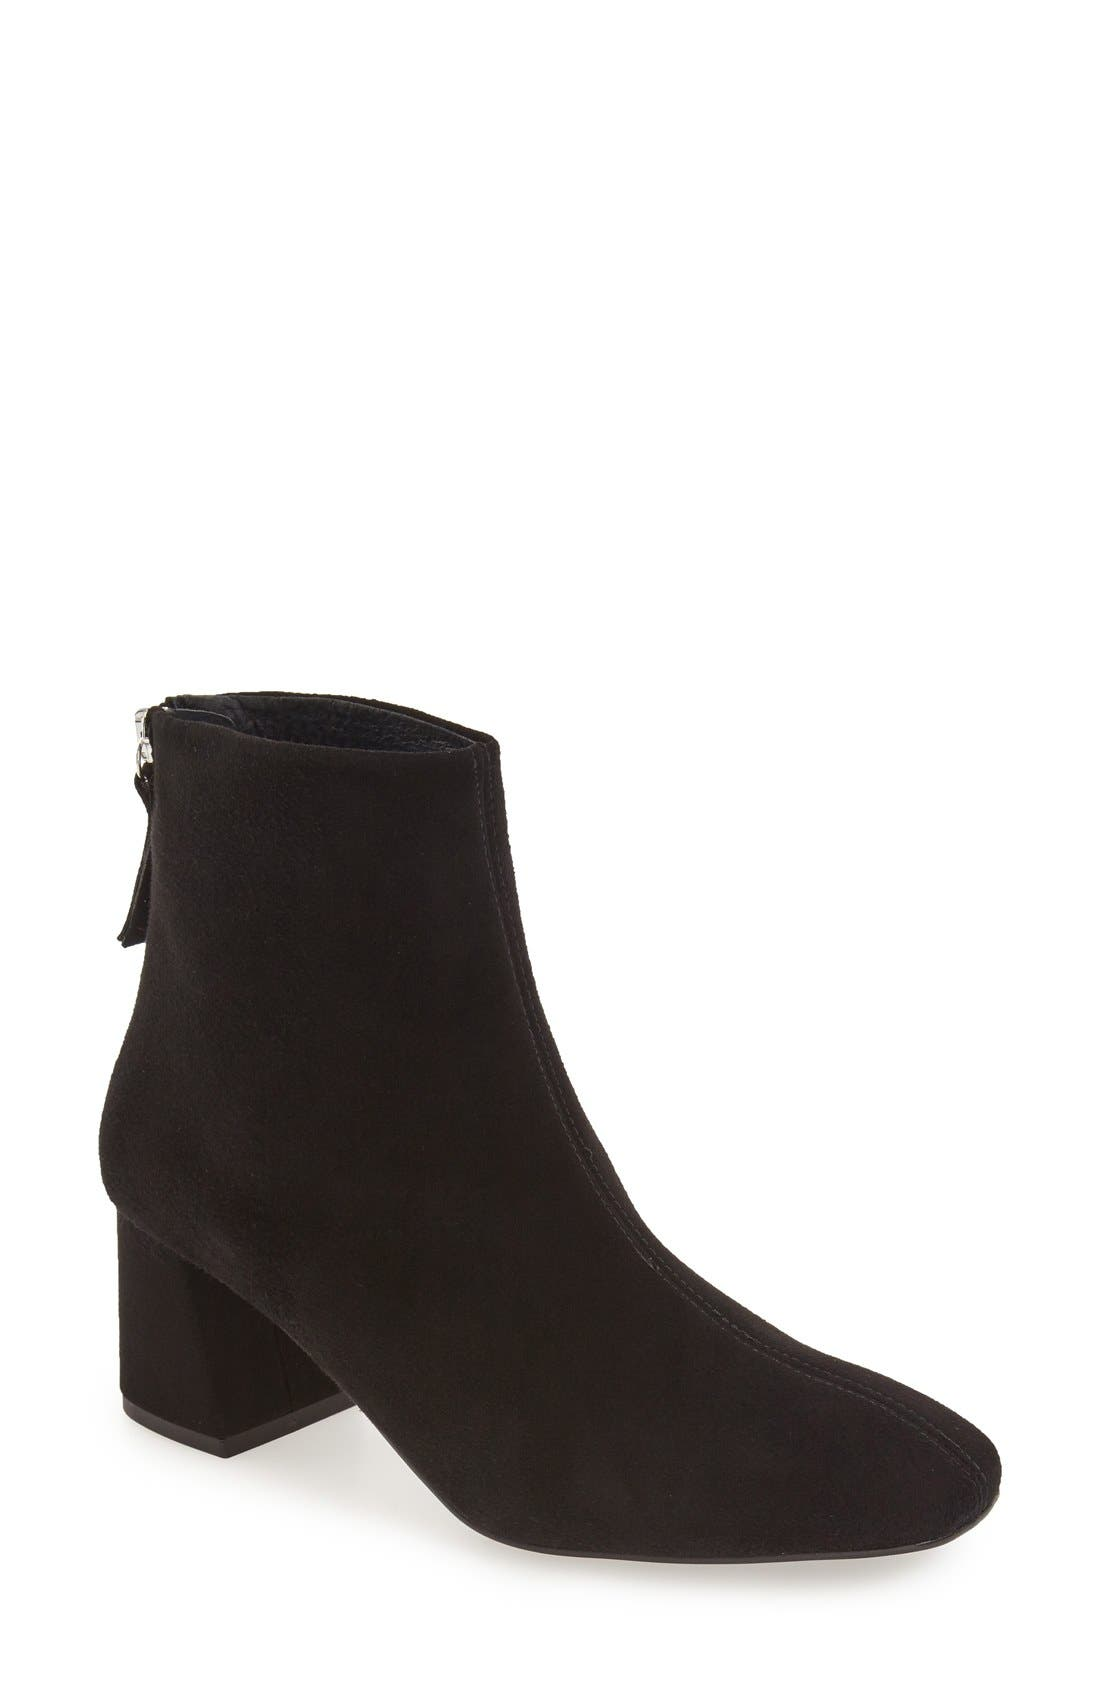 'Maggie' Flared Heel Bootie,                             Main thumbnail 1, color,                             001